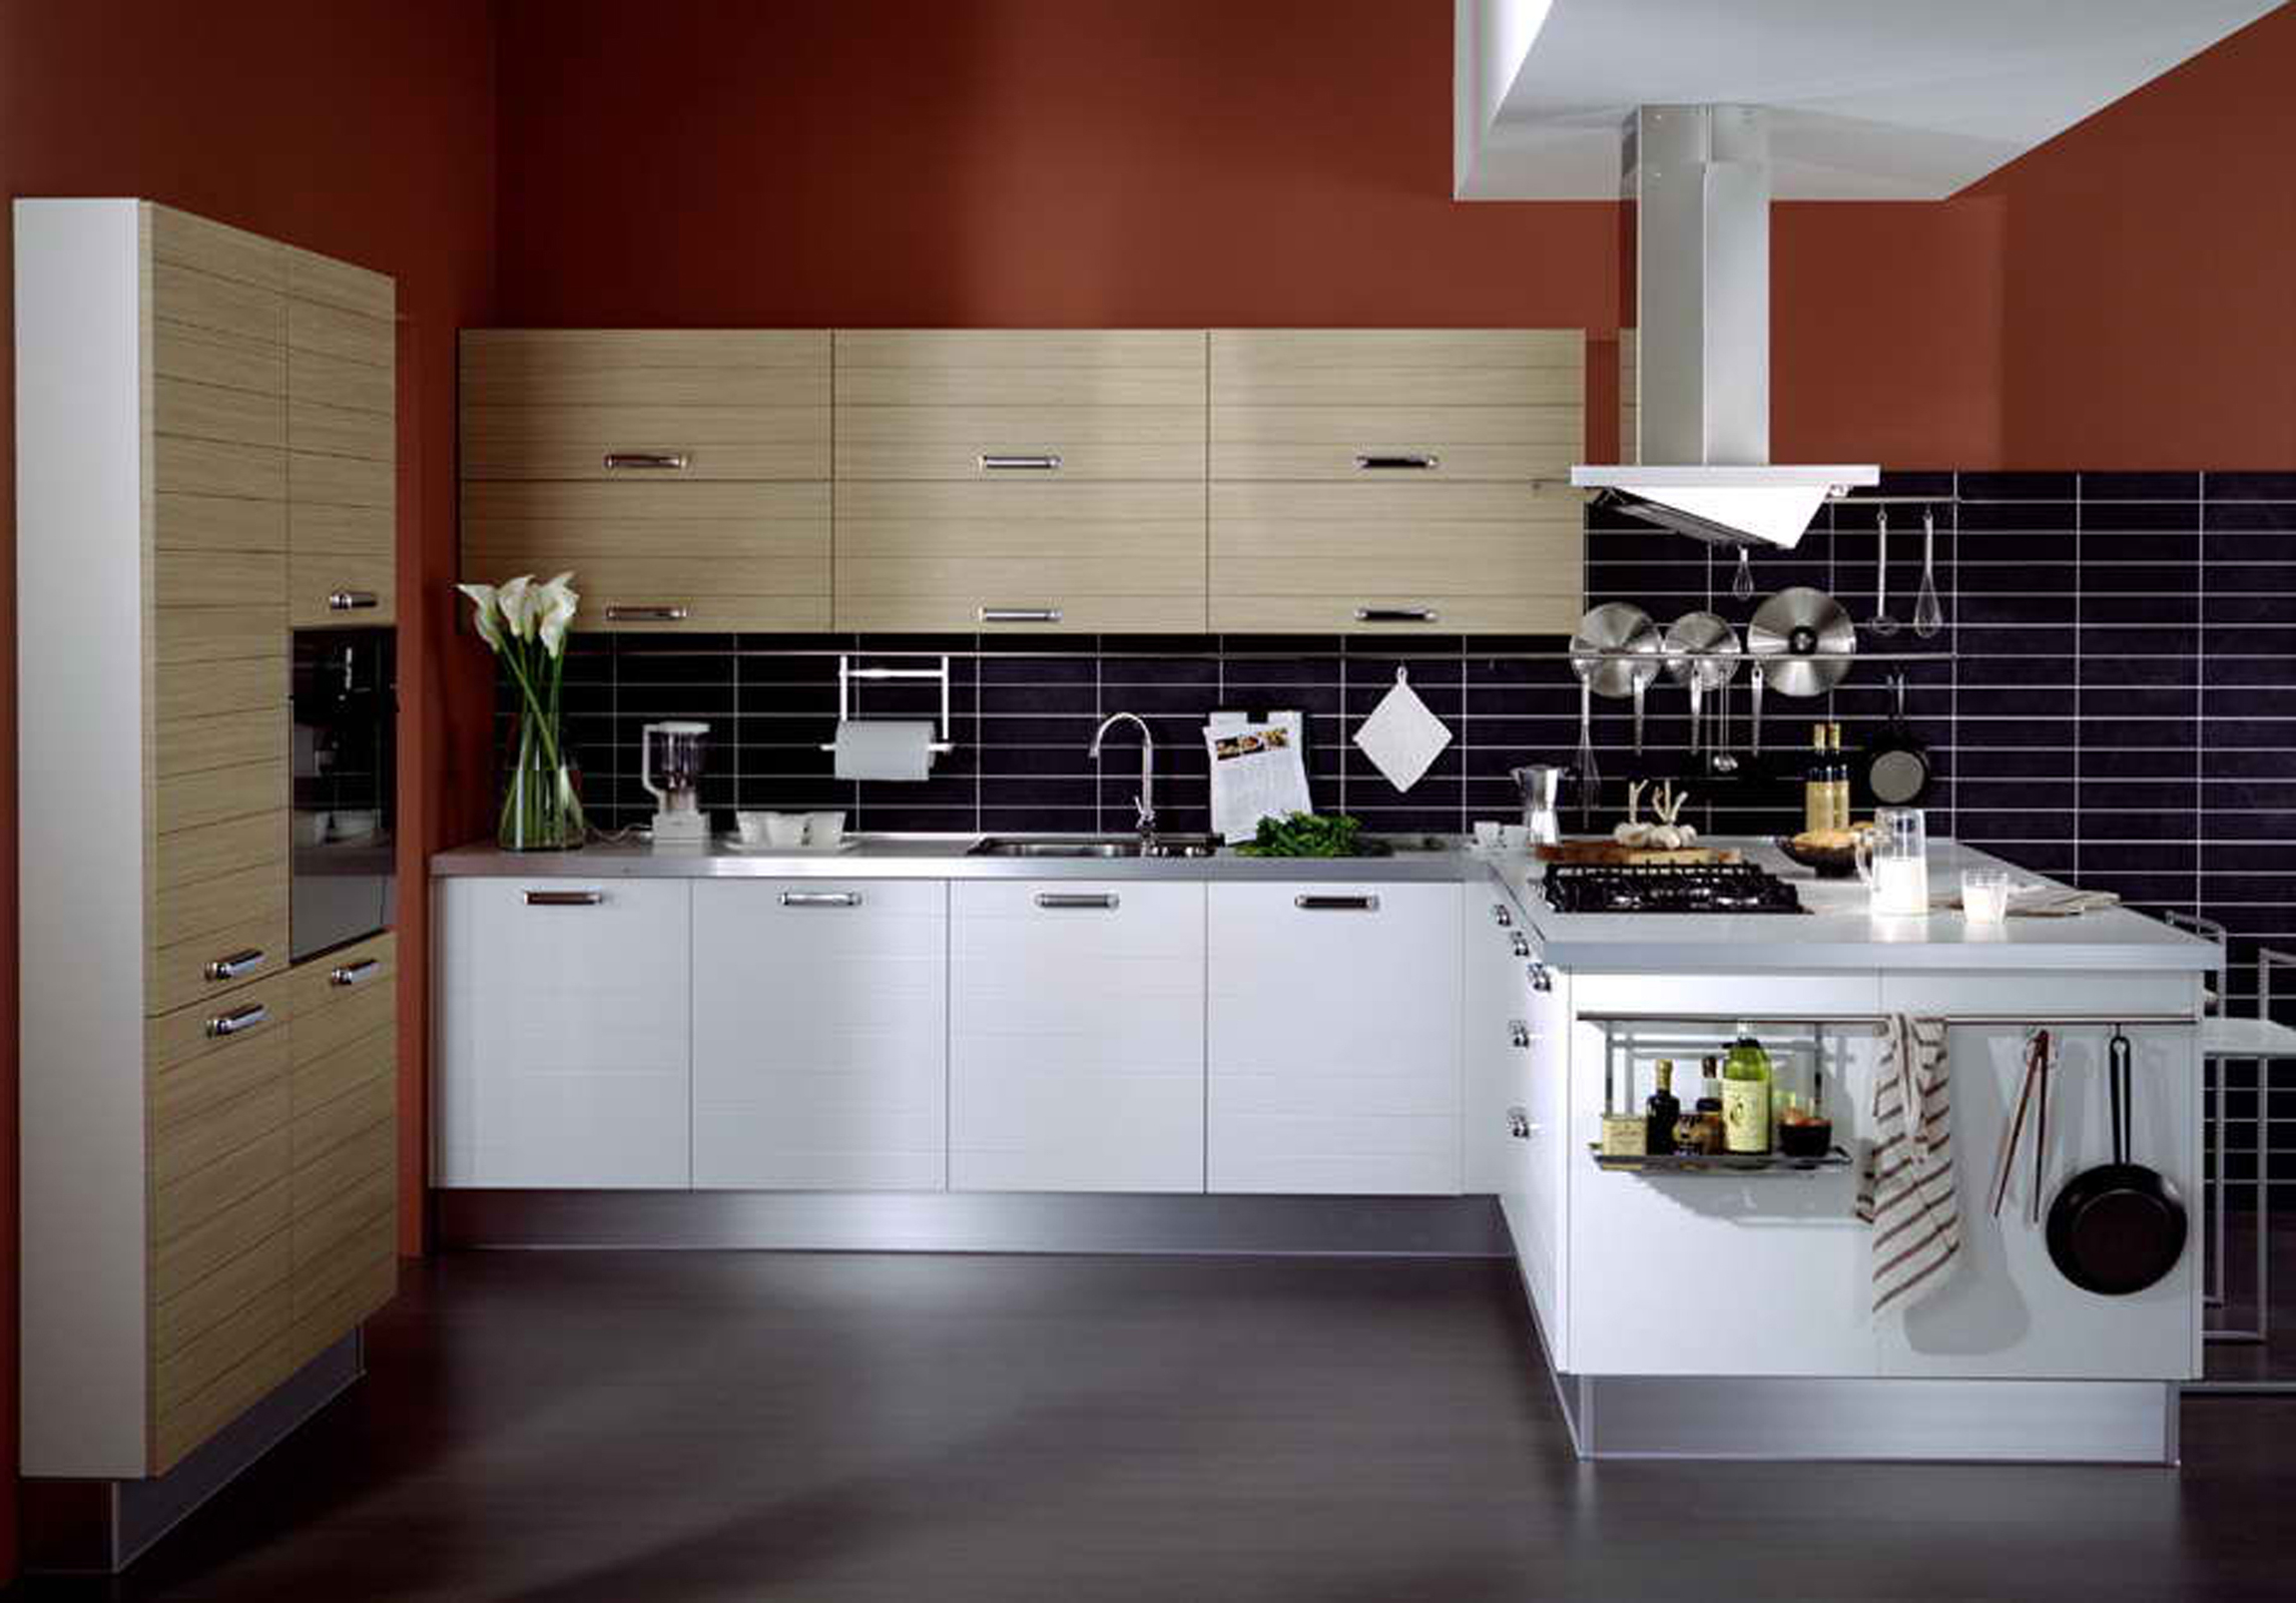 Arrangement For Elegant White Contemporary Kitchen Design Cabinet Colors (View 16 of 39)